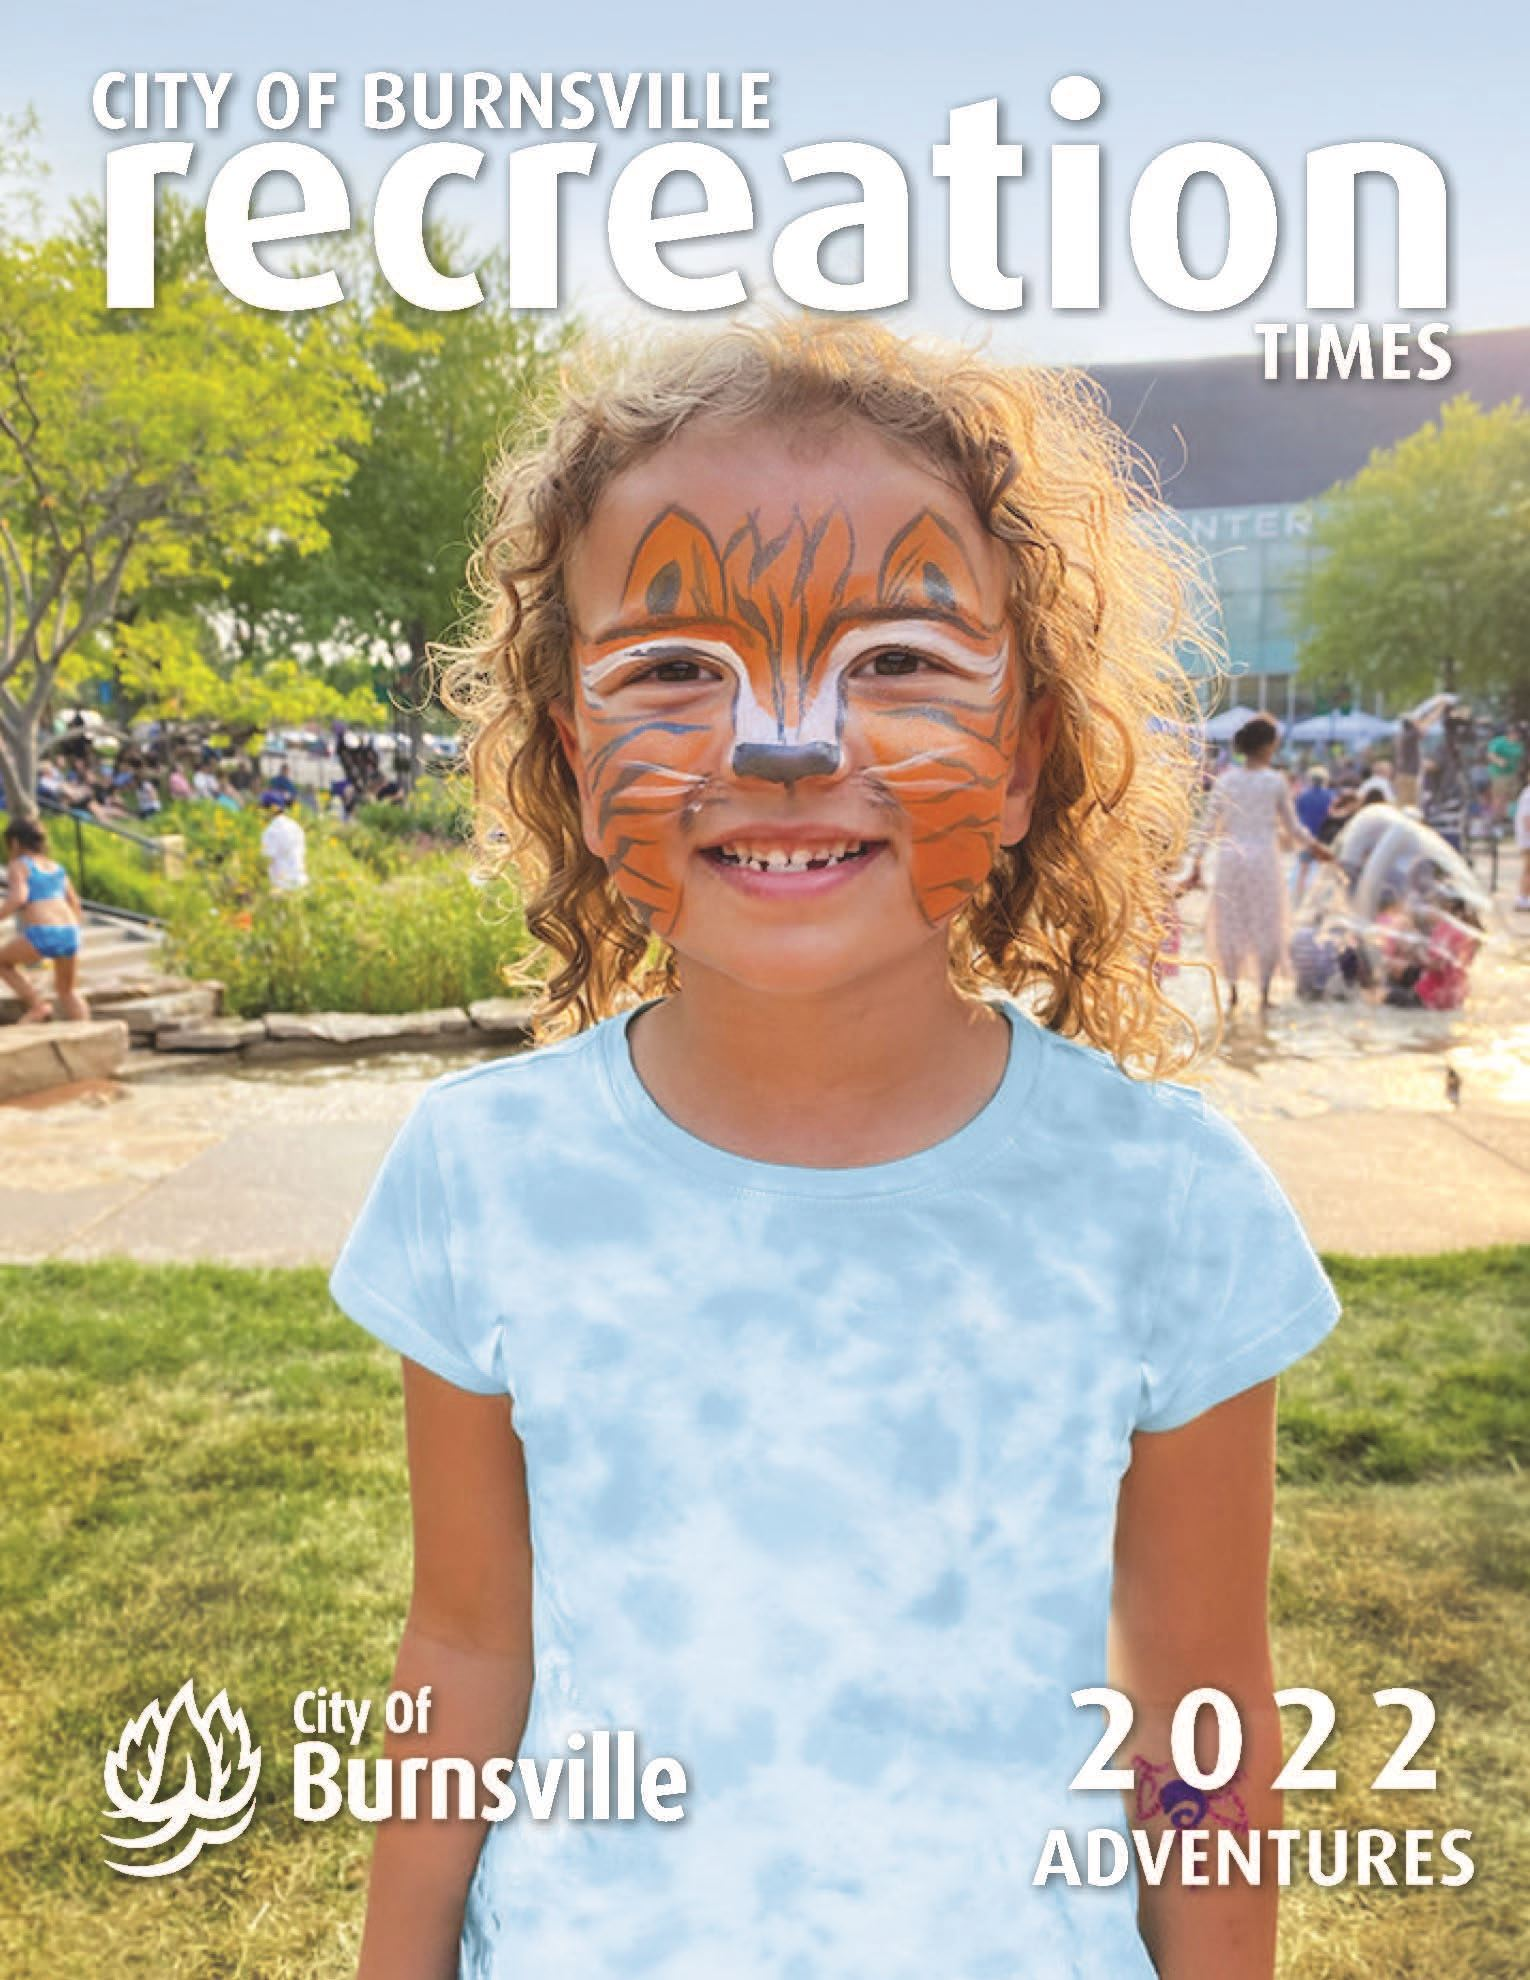 Recreation Times cover featuring kids playing a lawn game in a park